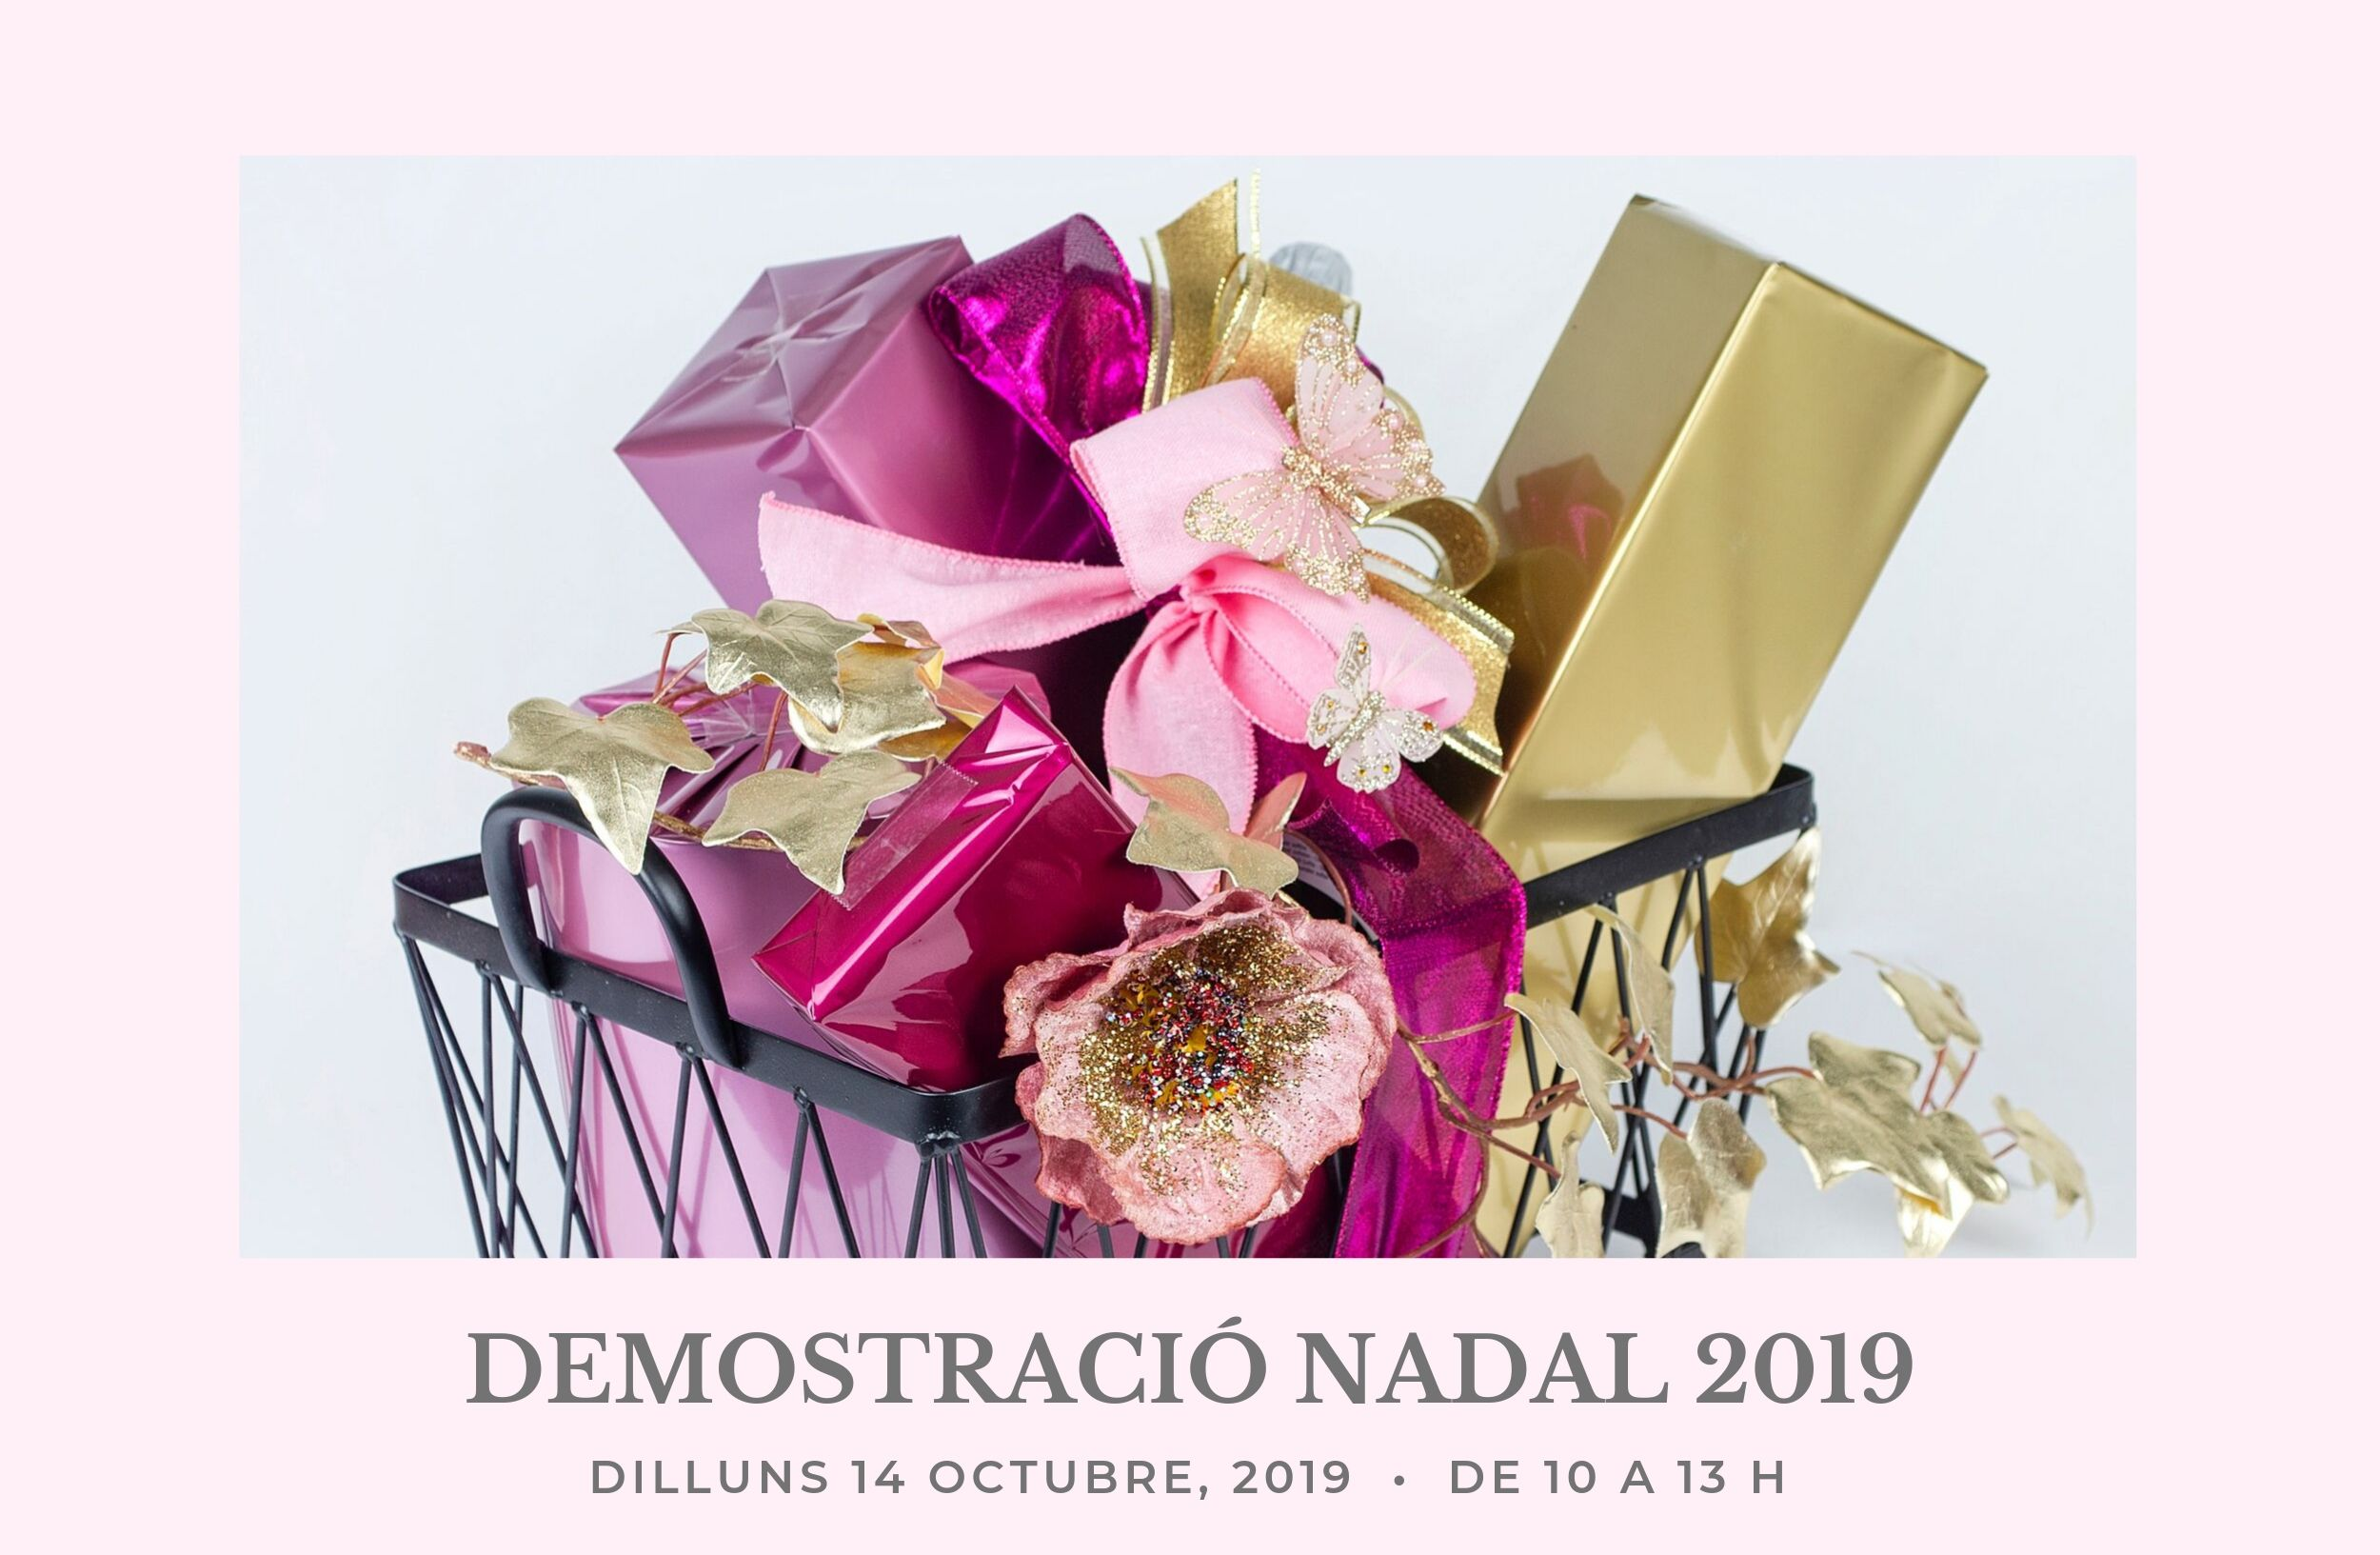 demostracio de com fer un packaging paquet lot de nadal